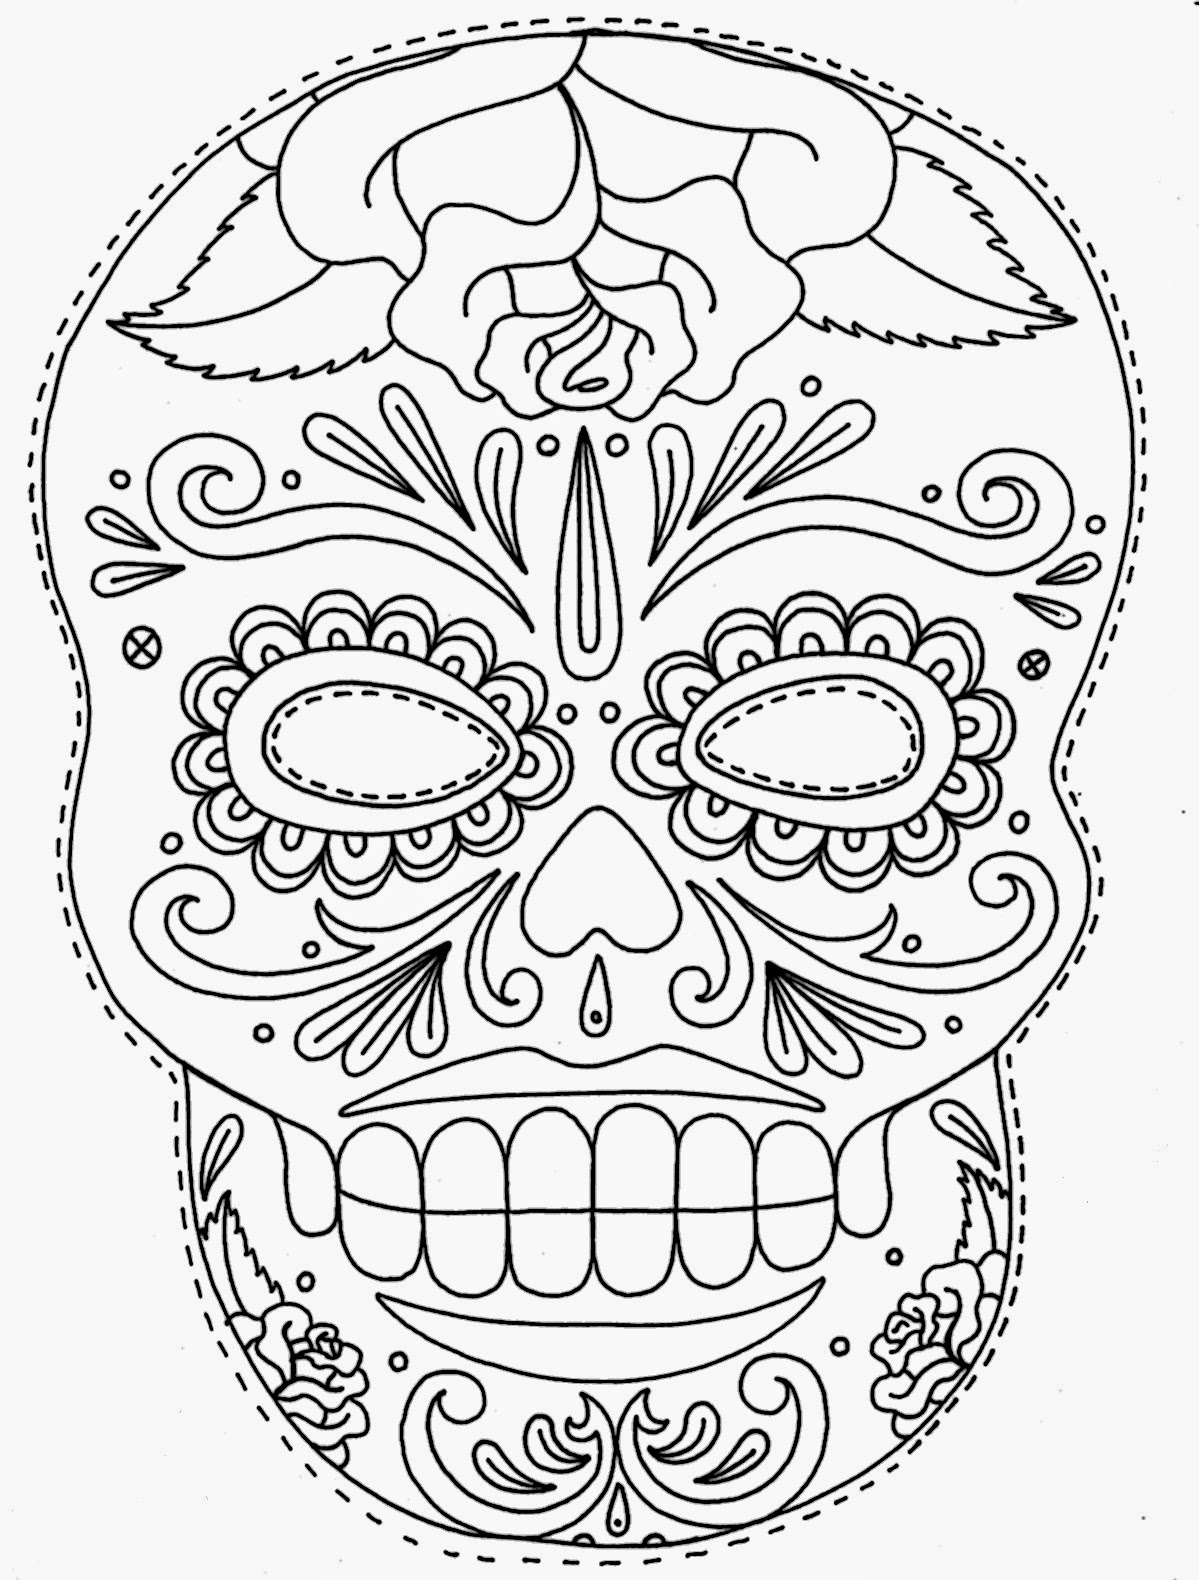 Tattoos book 2510 free printable tattoo stencils skulls for Day of the dead skull mask template